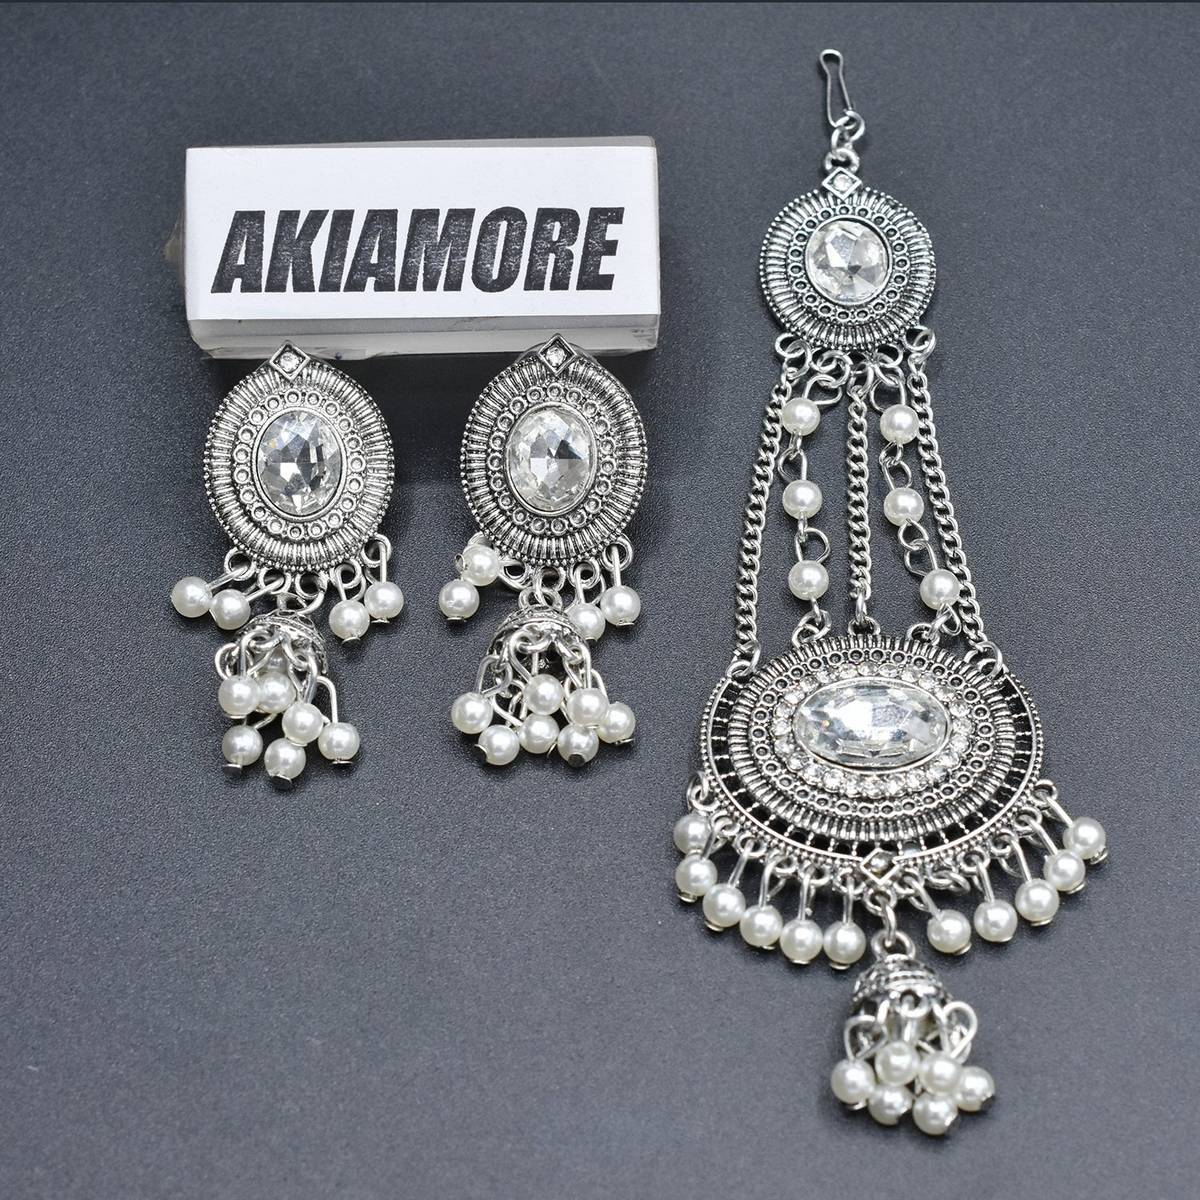 Antique Golden and Silver Mang Tikka With Earrings and White Pearl Jewellery Set For Women